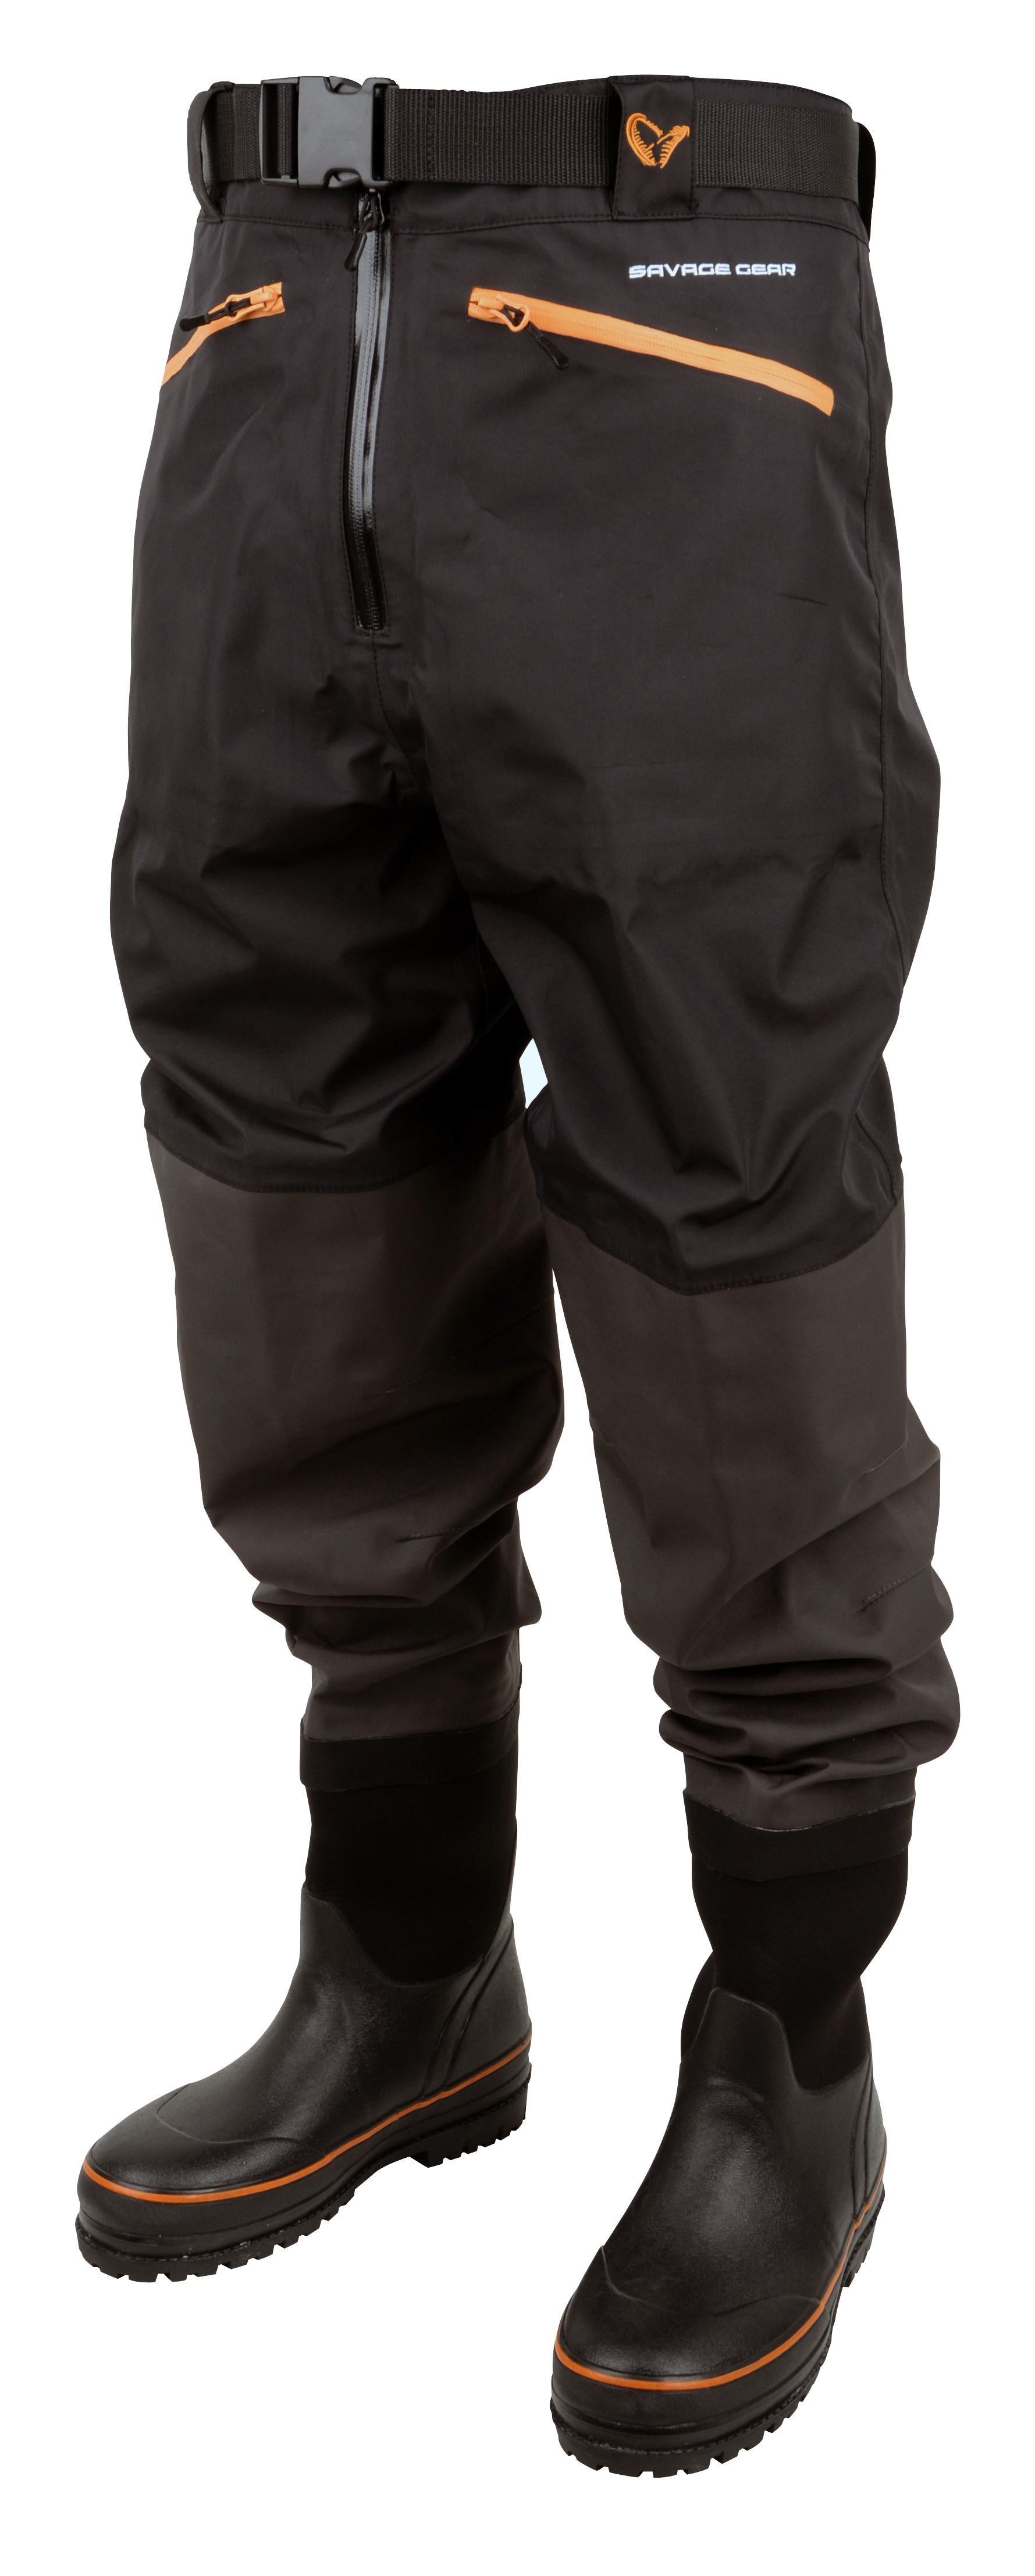 Savage gear breathable waist wader boot foot cleated for Fly fishing waders